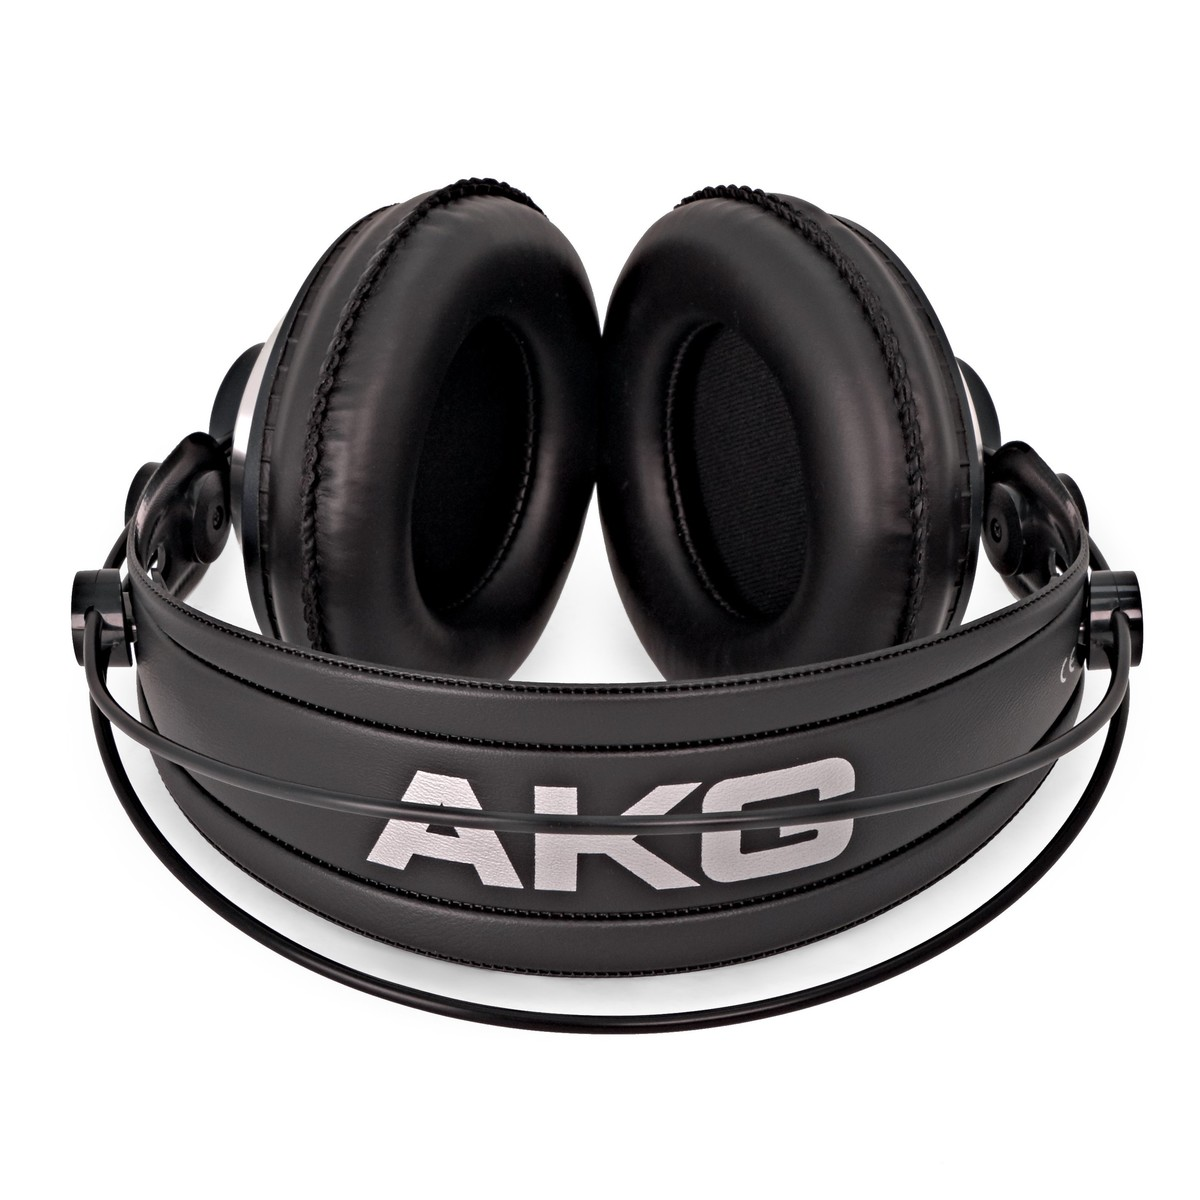 AKG K240 MKII Semi-Open Headphones at Gear4music ab5e204d35c0f